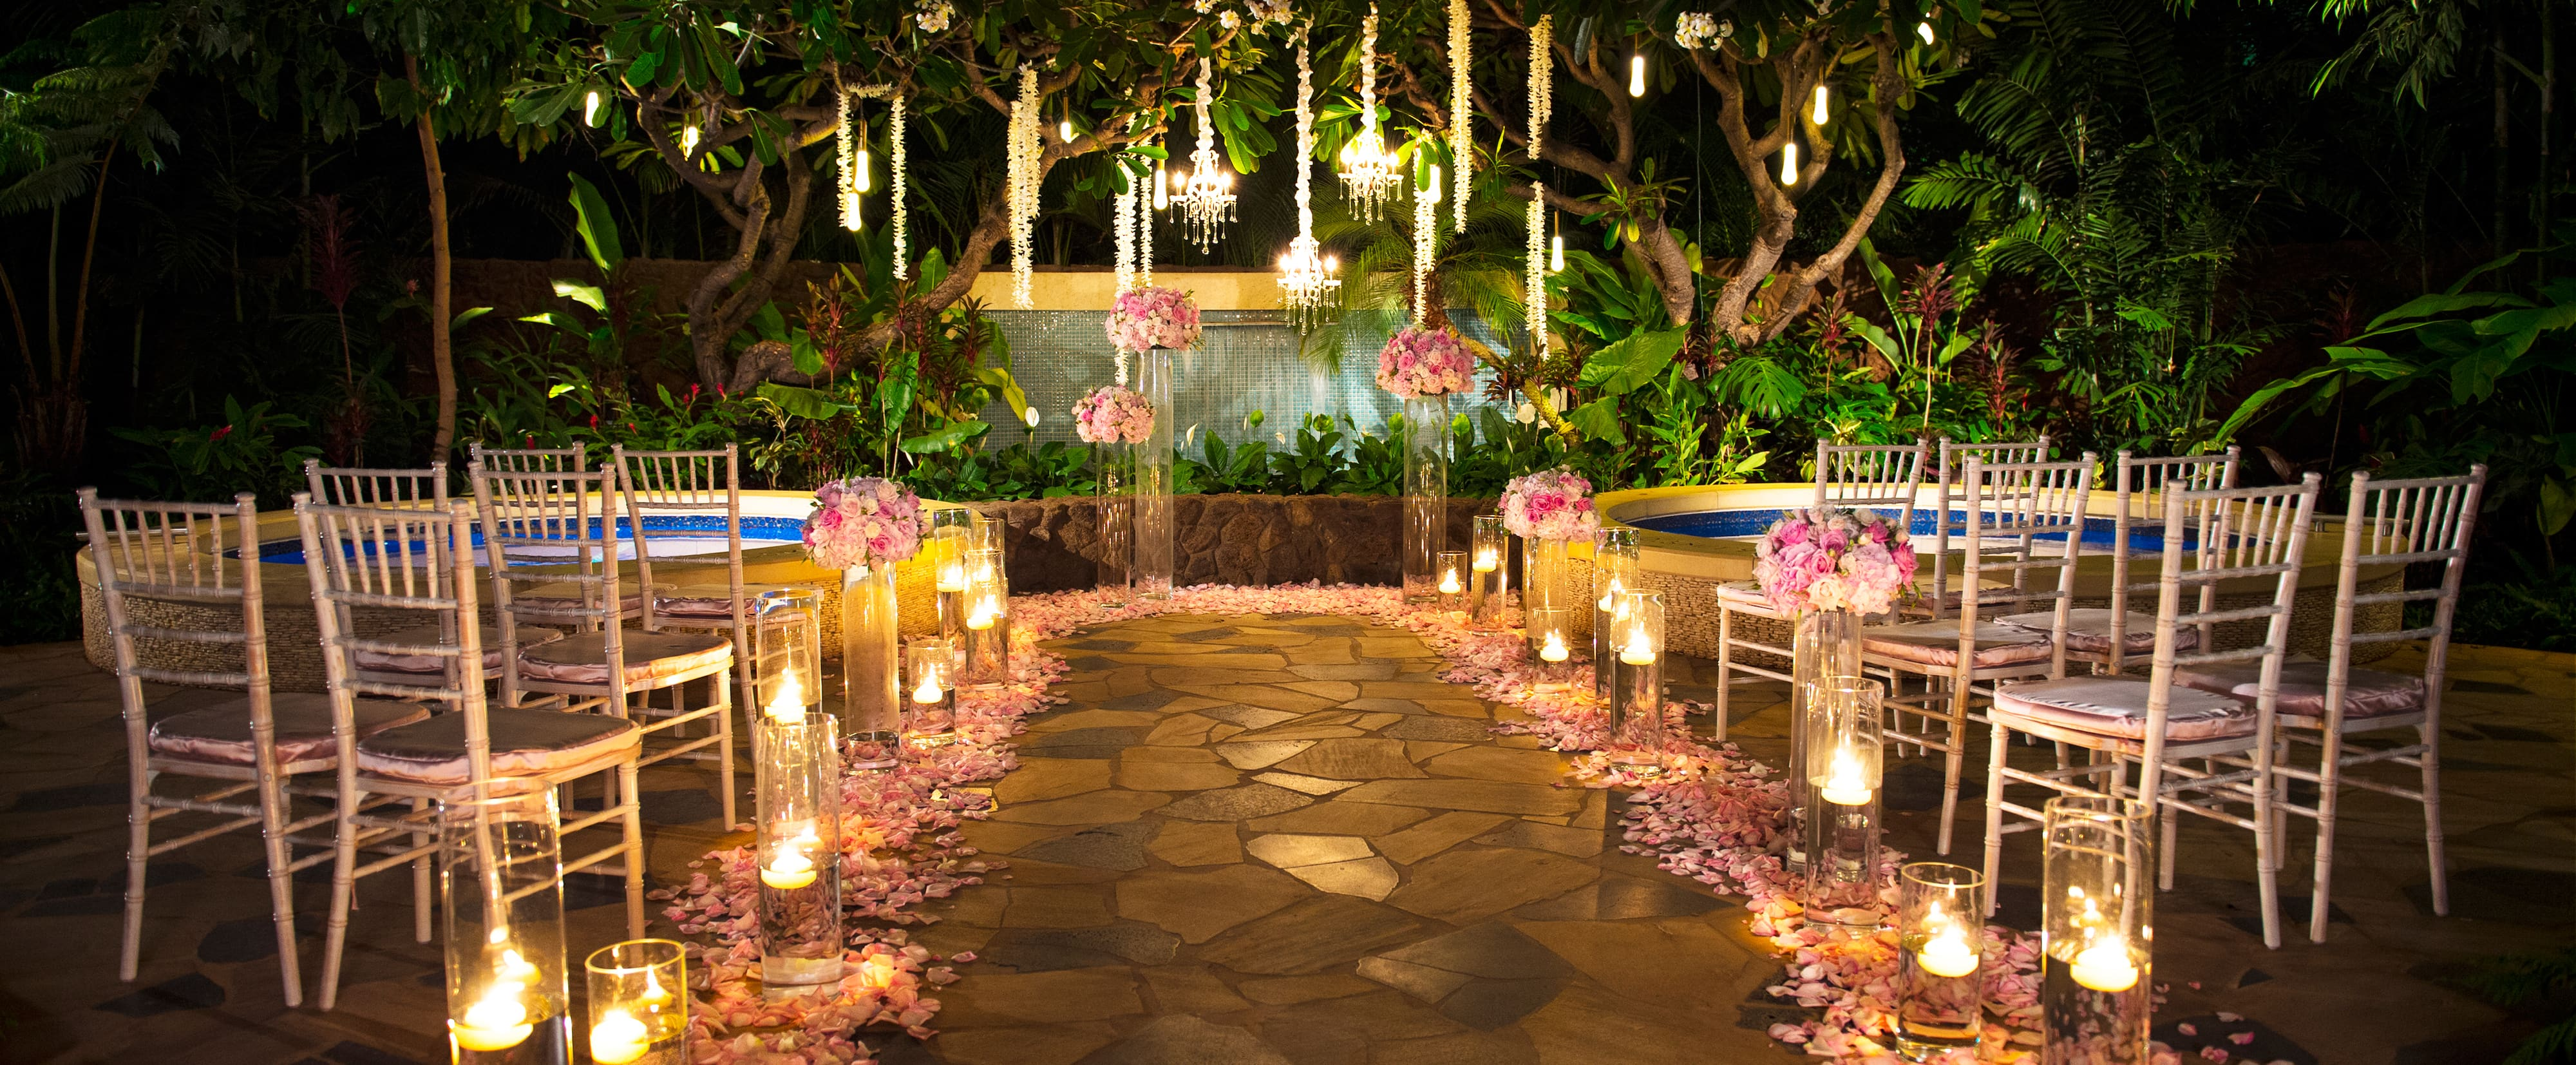 Kula Wai garden set up for a wedding, with flowers, chandeliers and chairs